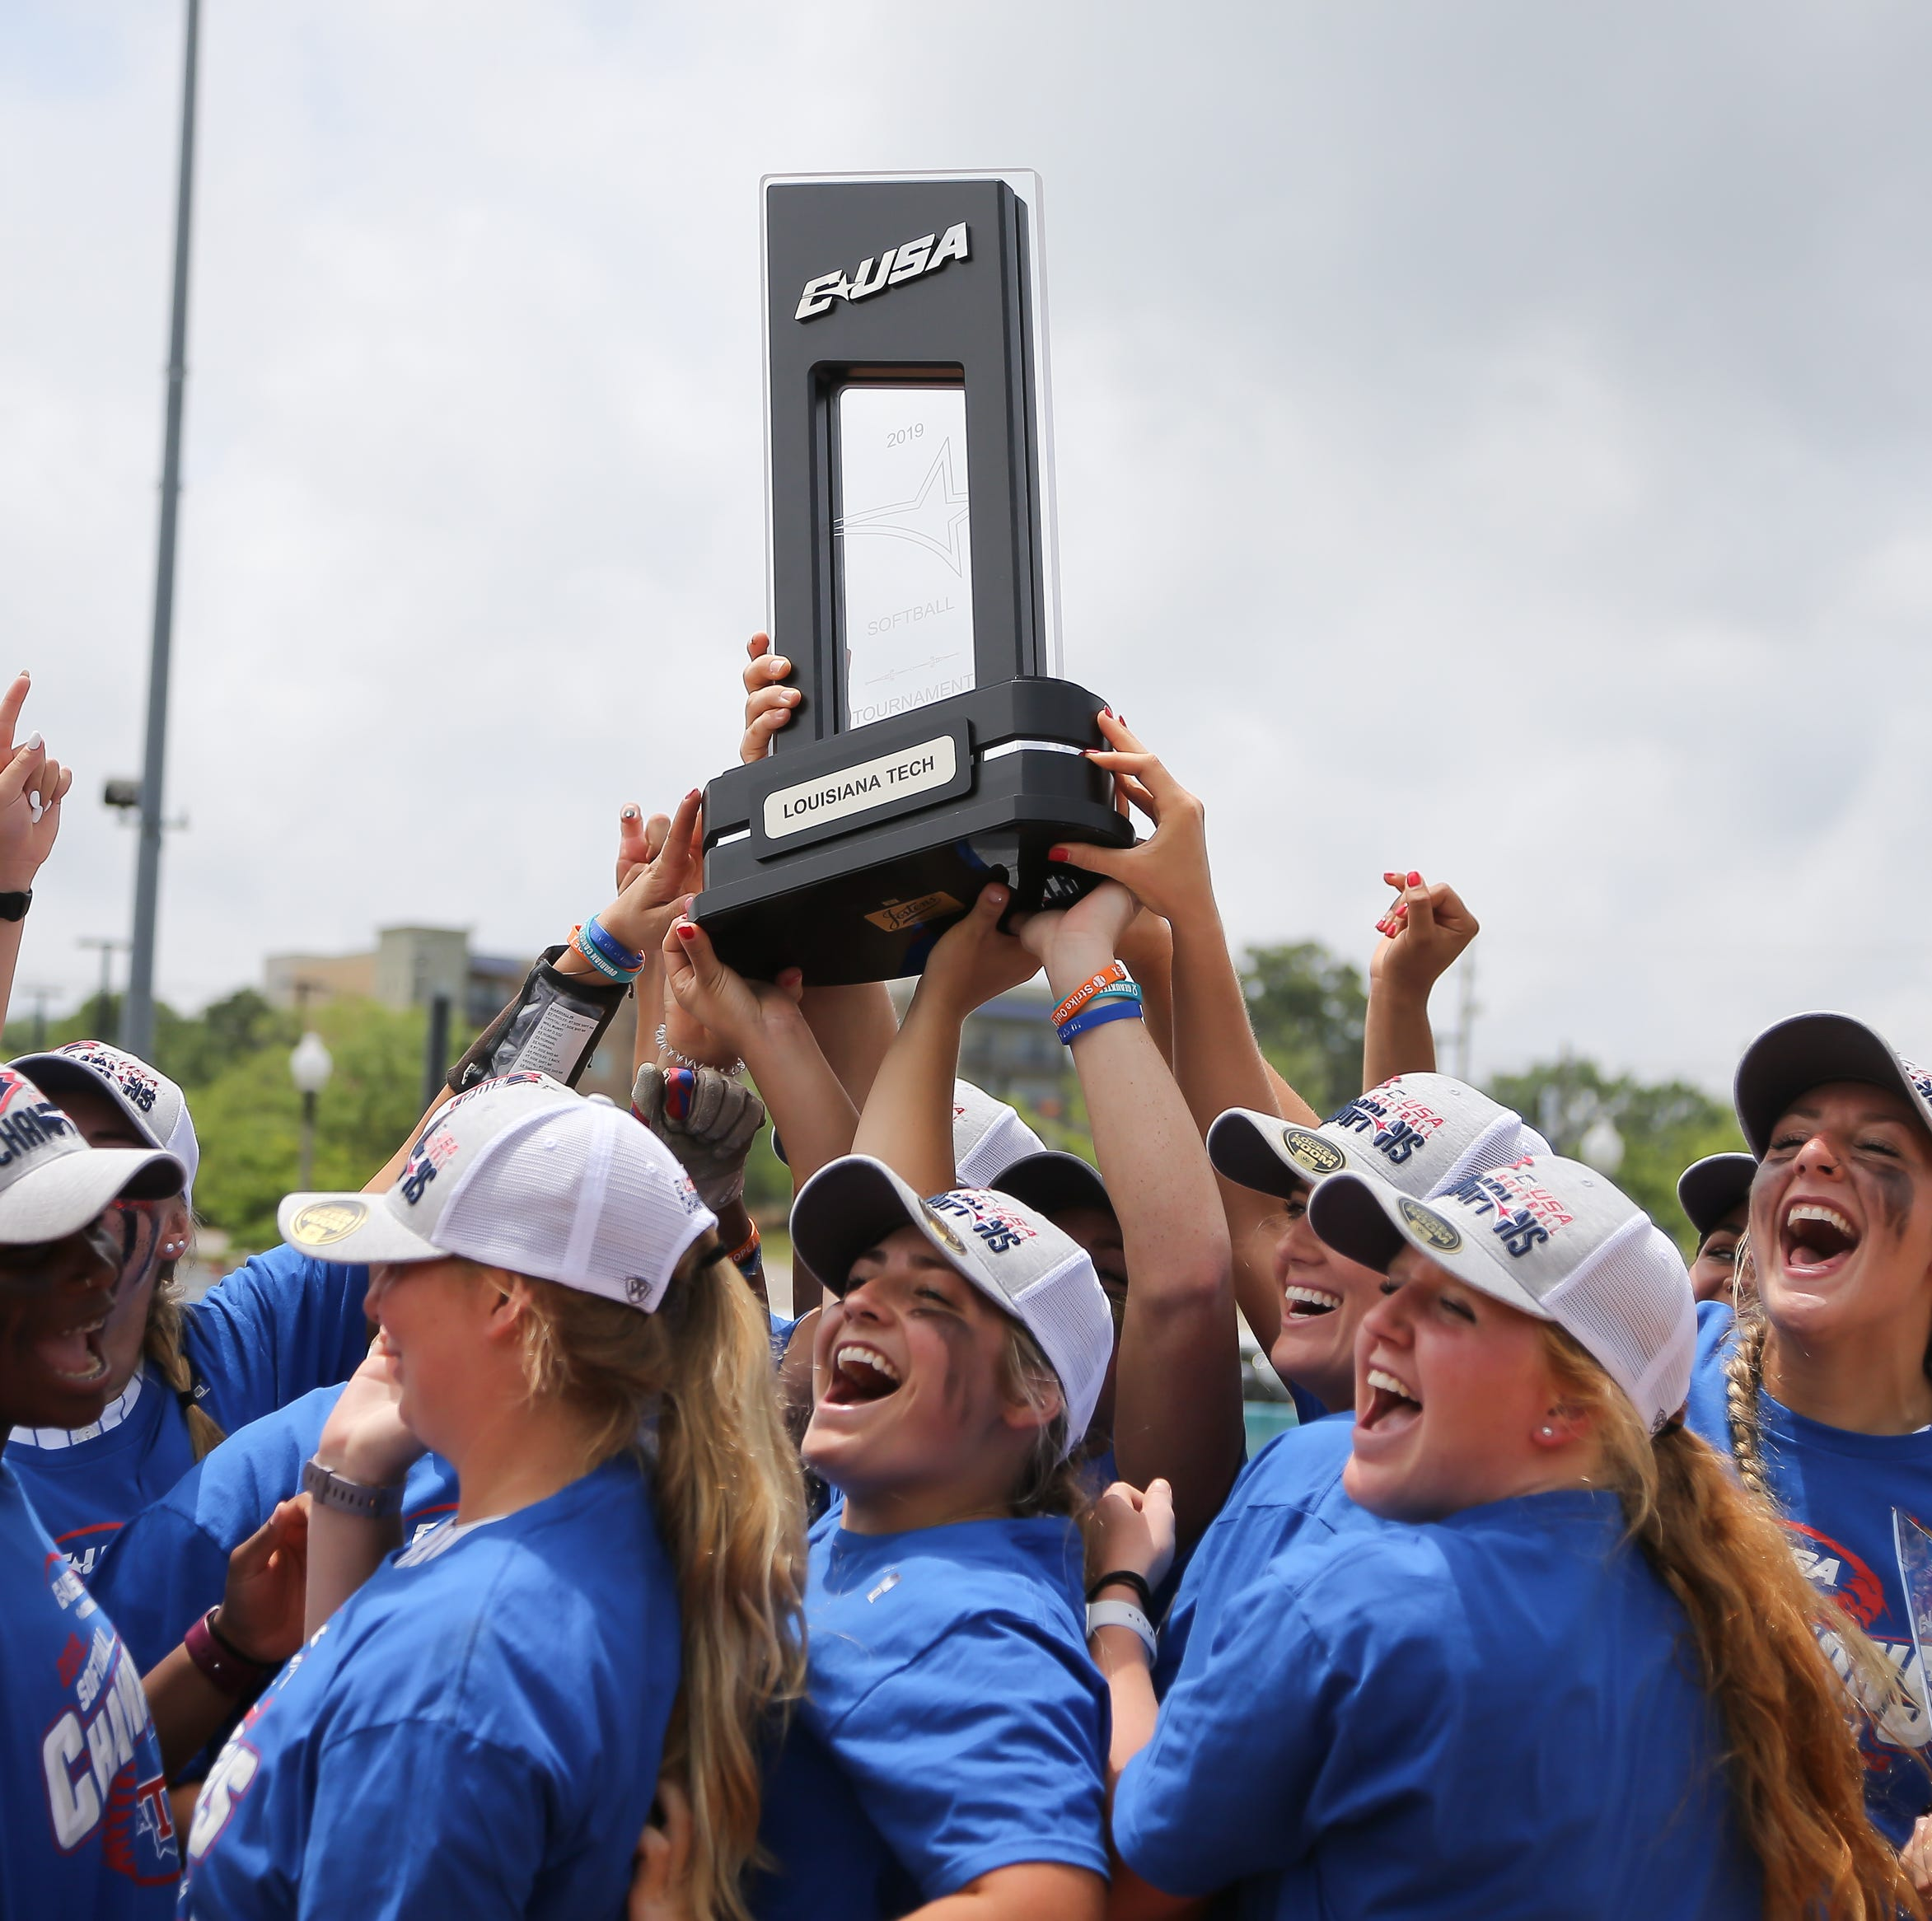 Louisiana Tech heads to LSU for NCAA regionals